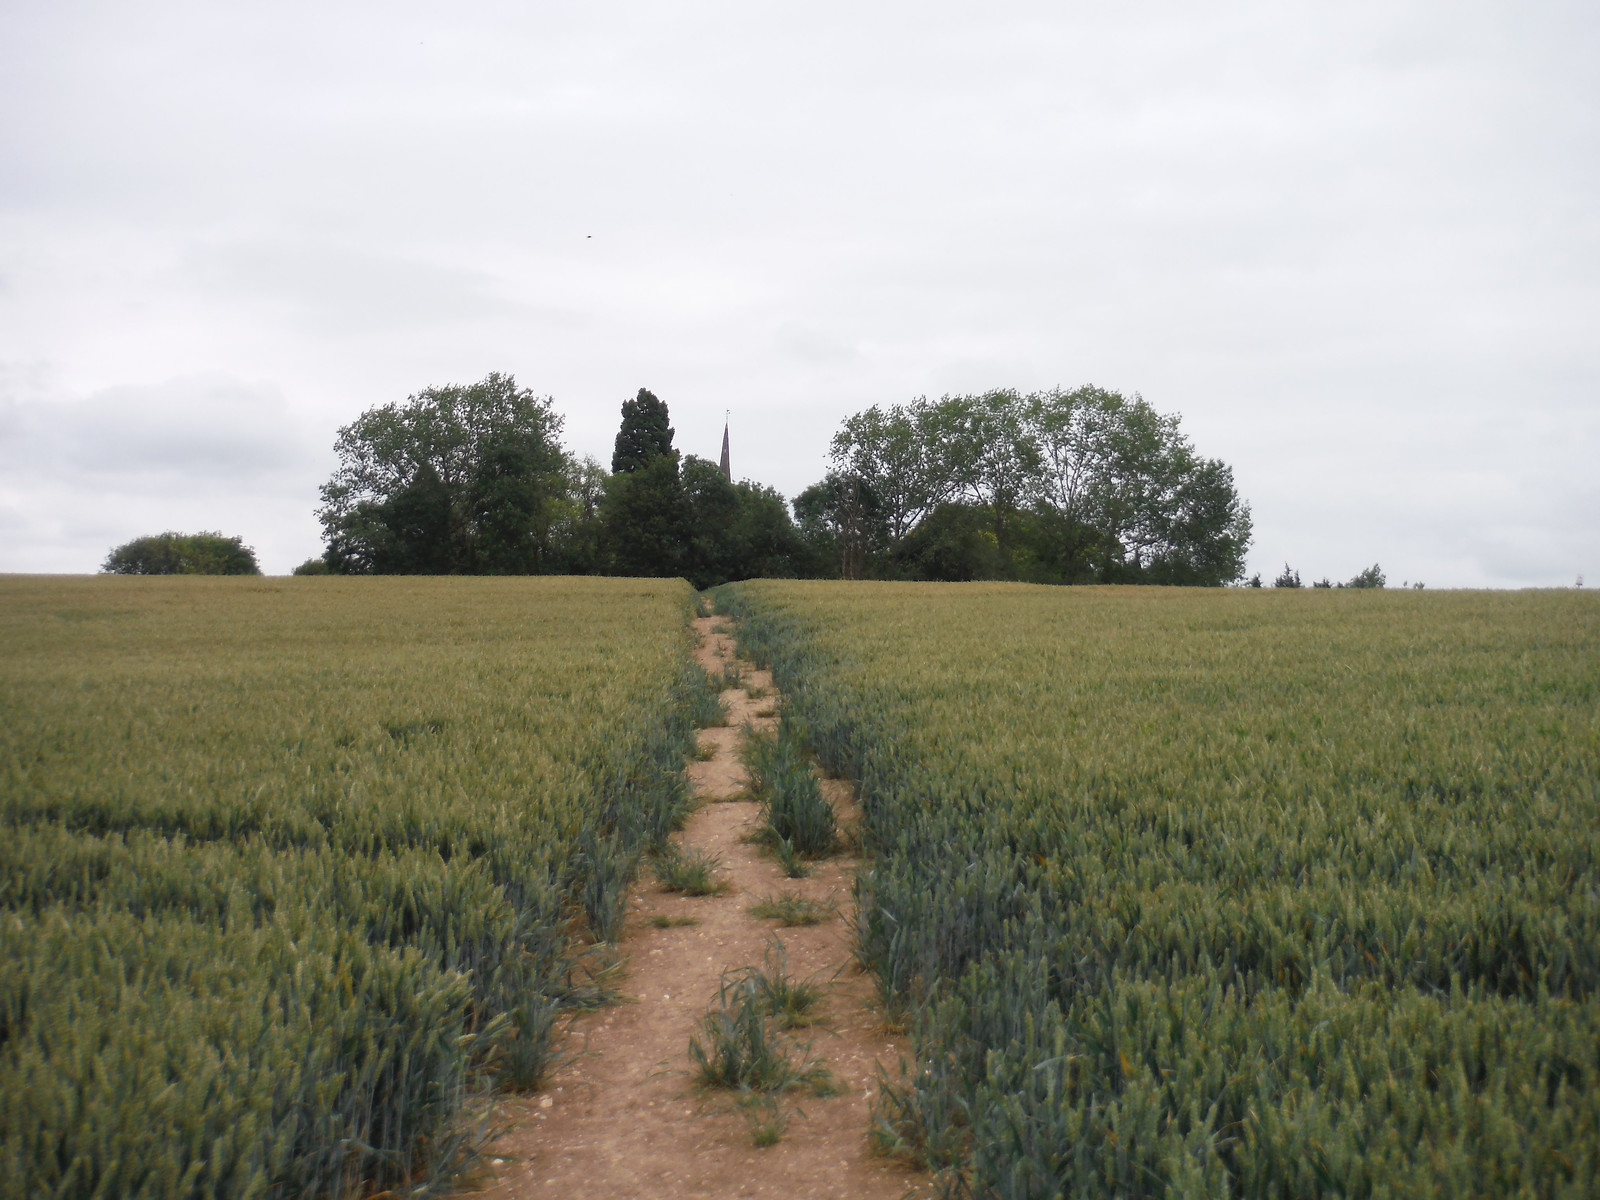 Towards Thorley Church SWC Walk 210 - Sawbridgeworth to Bishop's Stortfort (via Henry Moore Foundation)